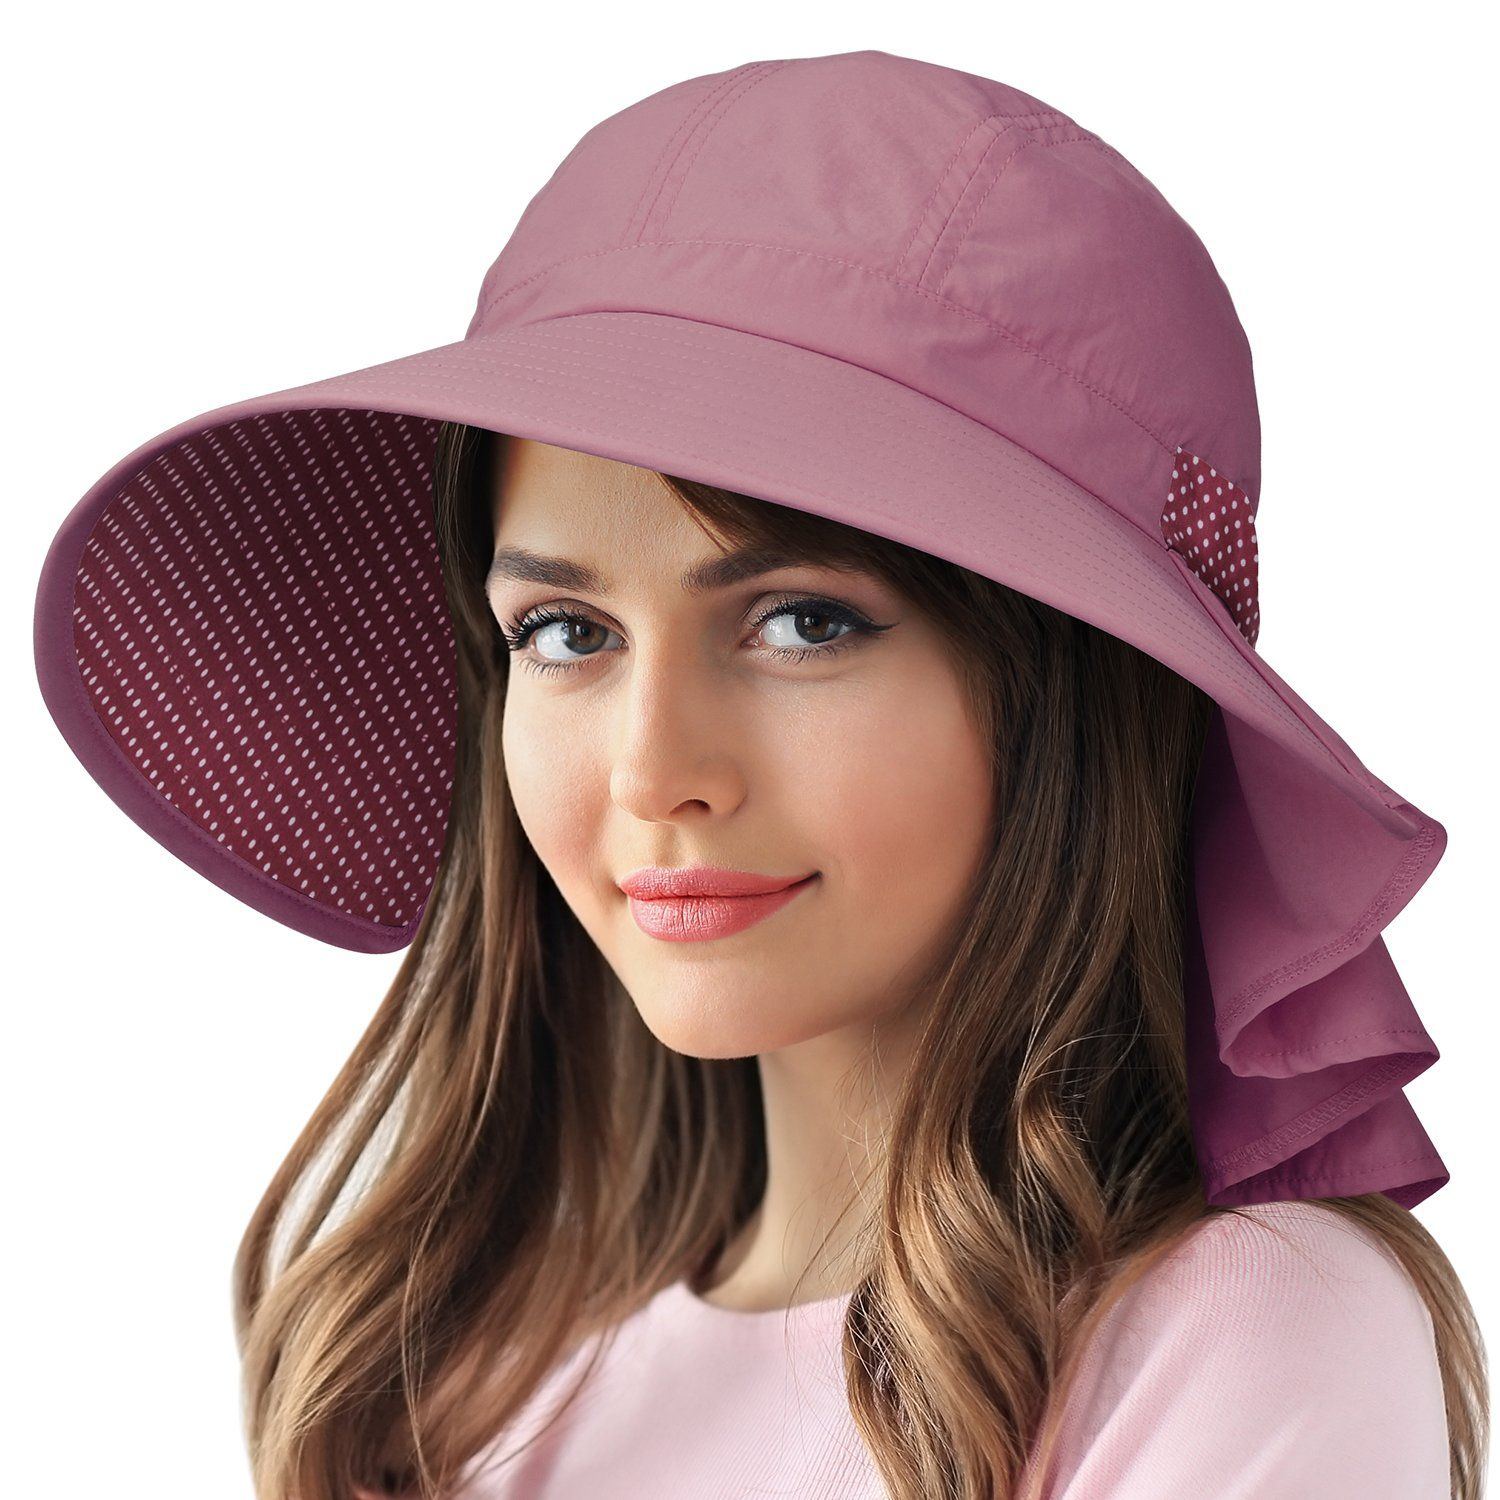 Women S Wide Brim Sun Protection Hats With Flap Neck Cover For Traveling Hiking Hiking Hats For Women Summer Hats Sun Protection Hat